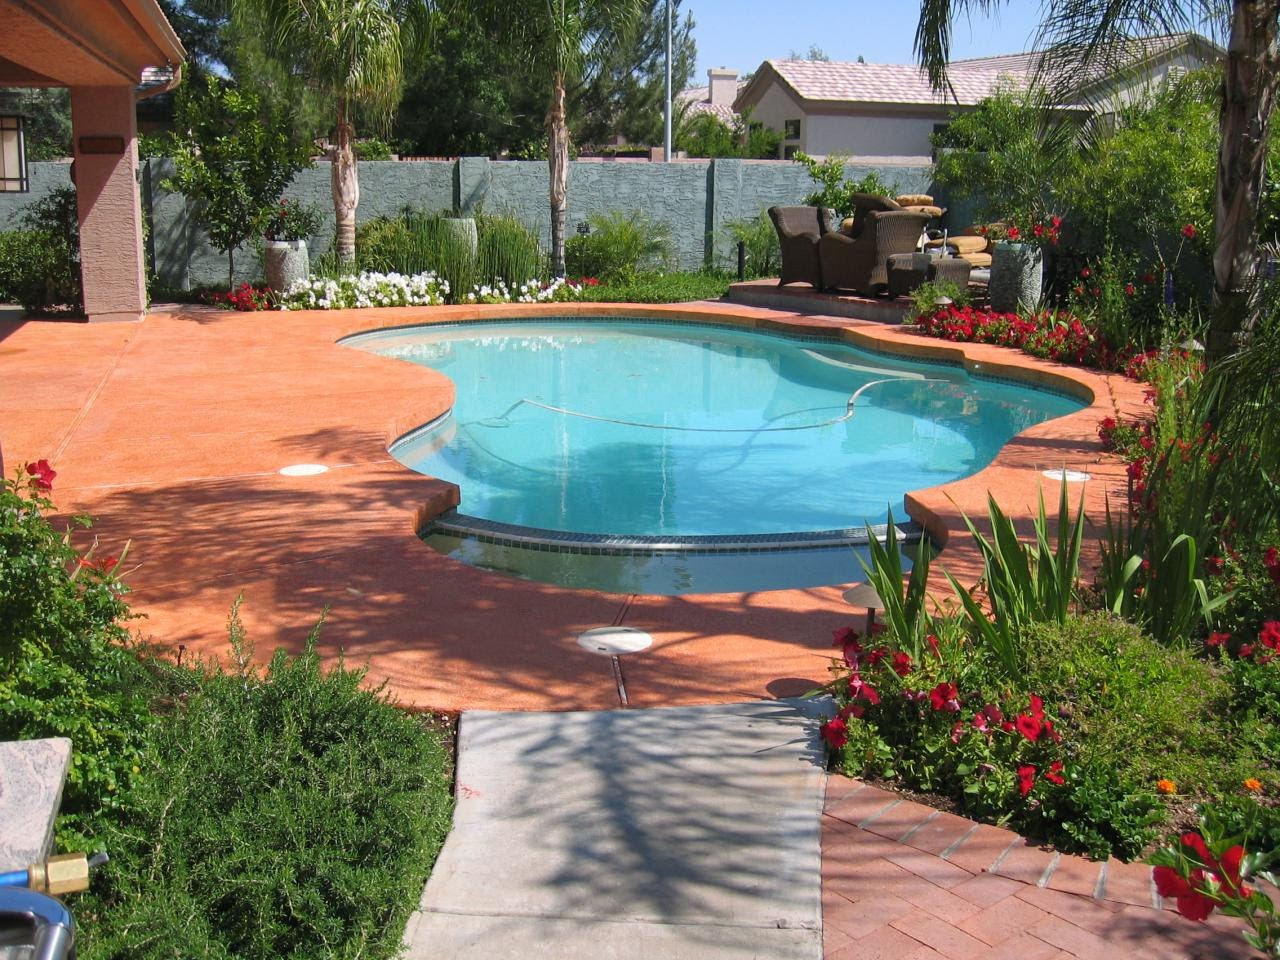 Pool Deck Paint Home Depot Home Painting Ideas